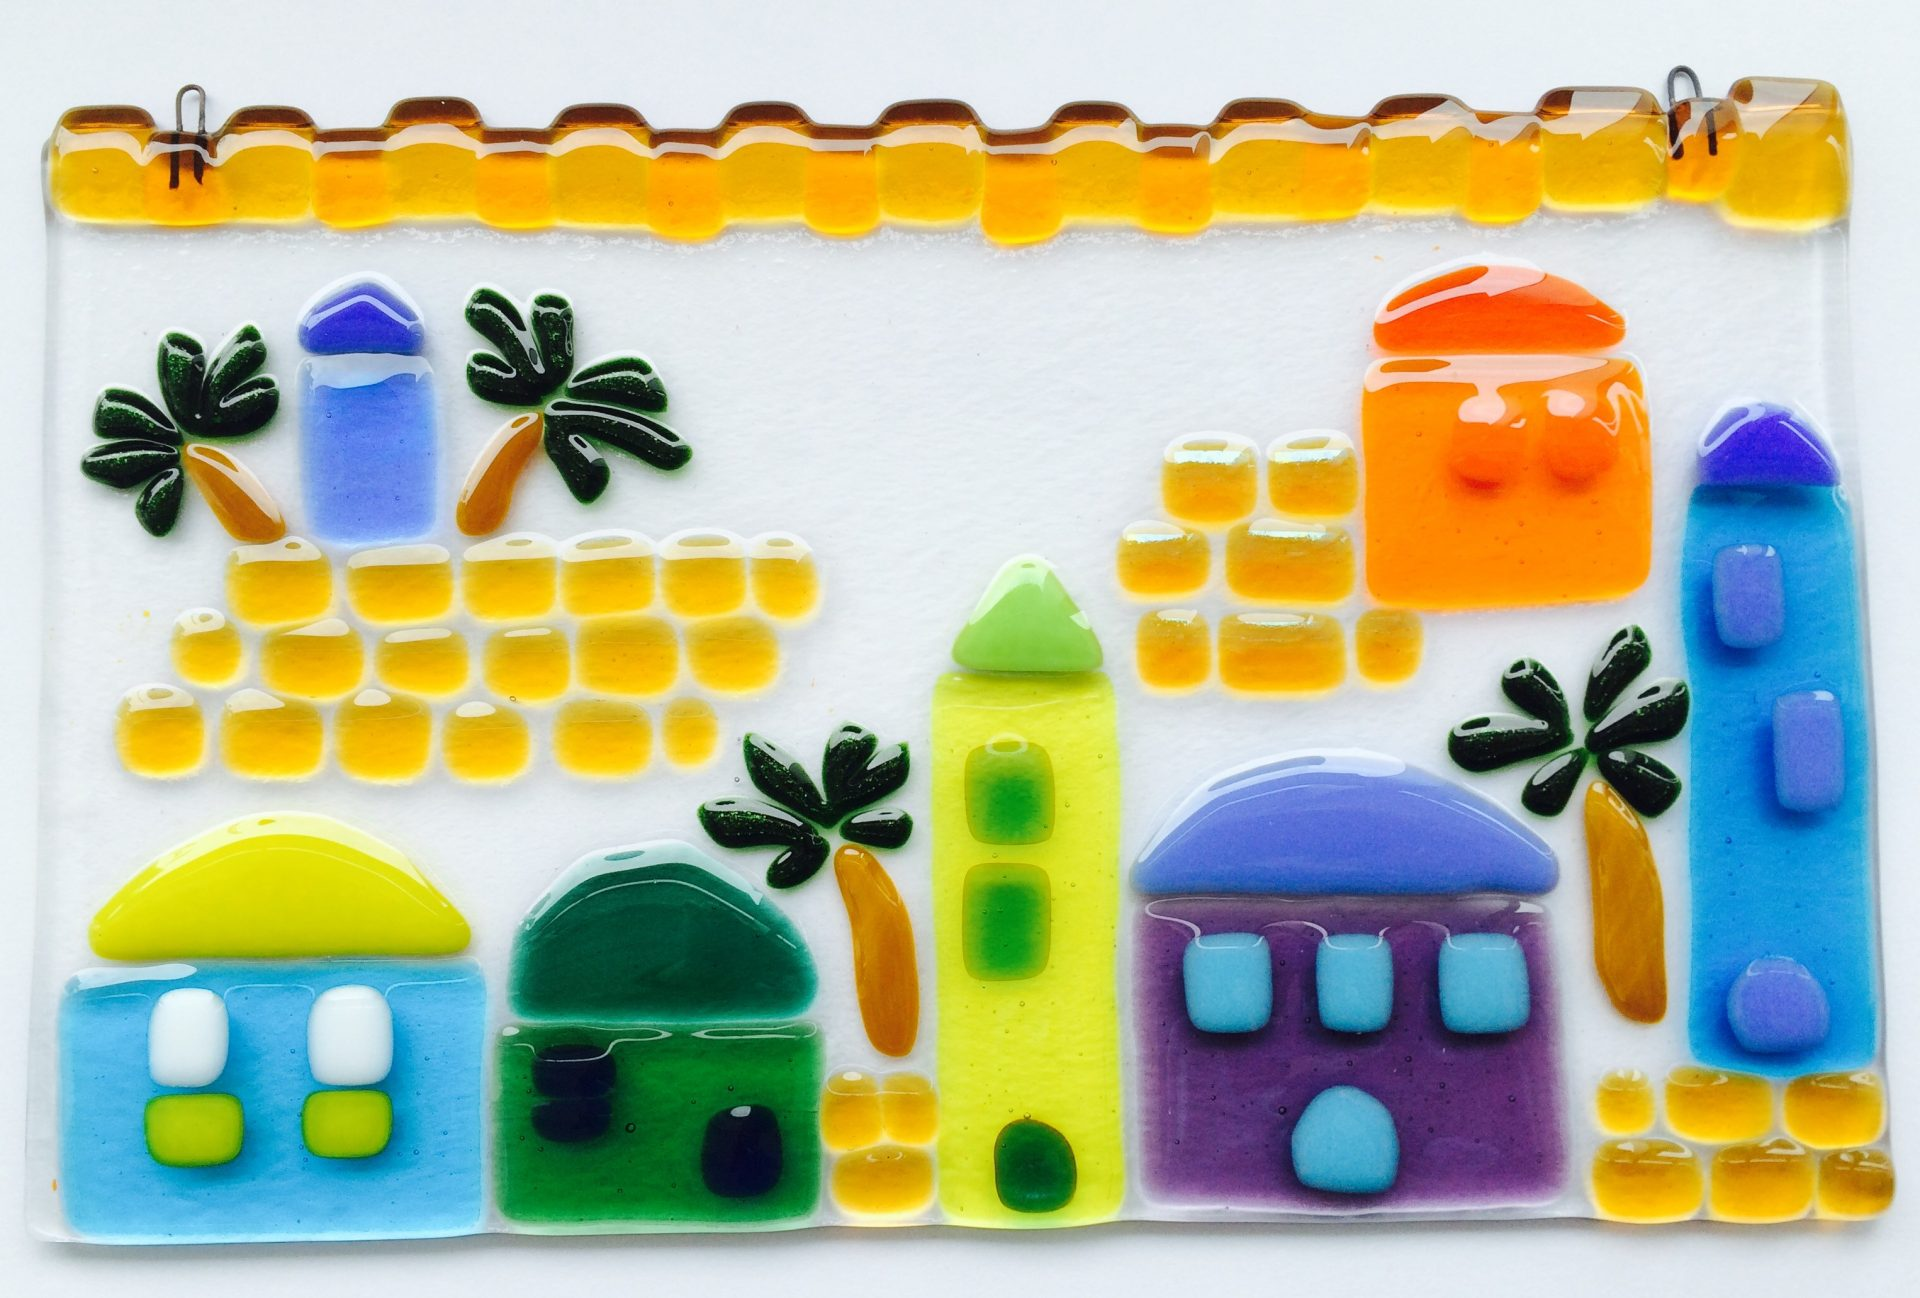 Jerusalem Fused Glass Wall Hanging: All Ages | VisArts